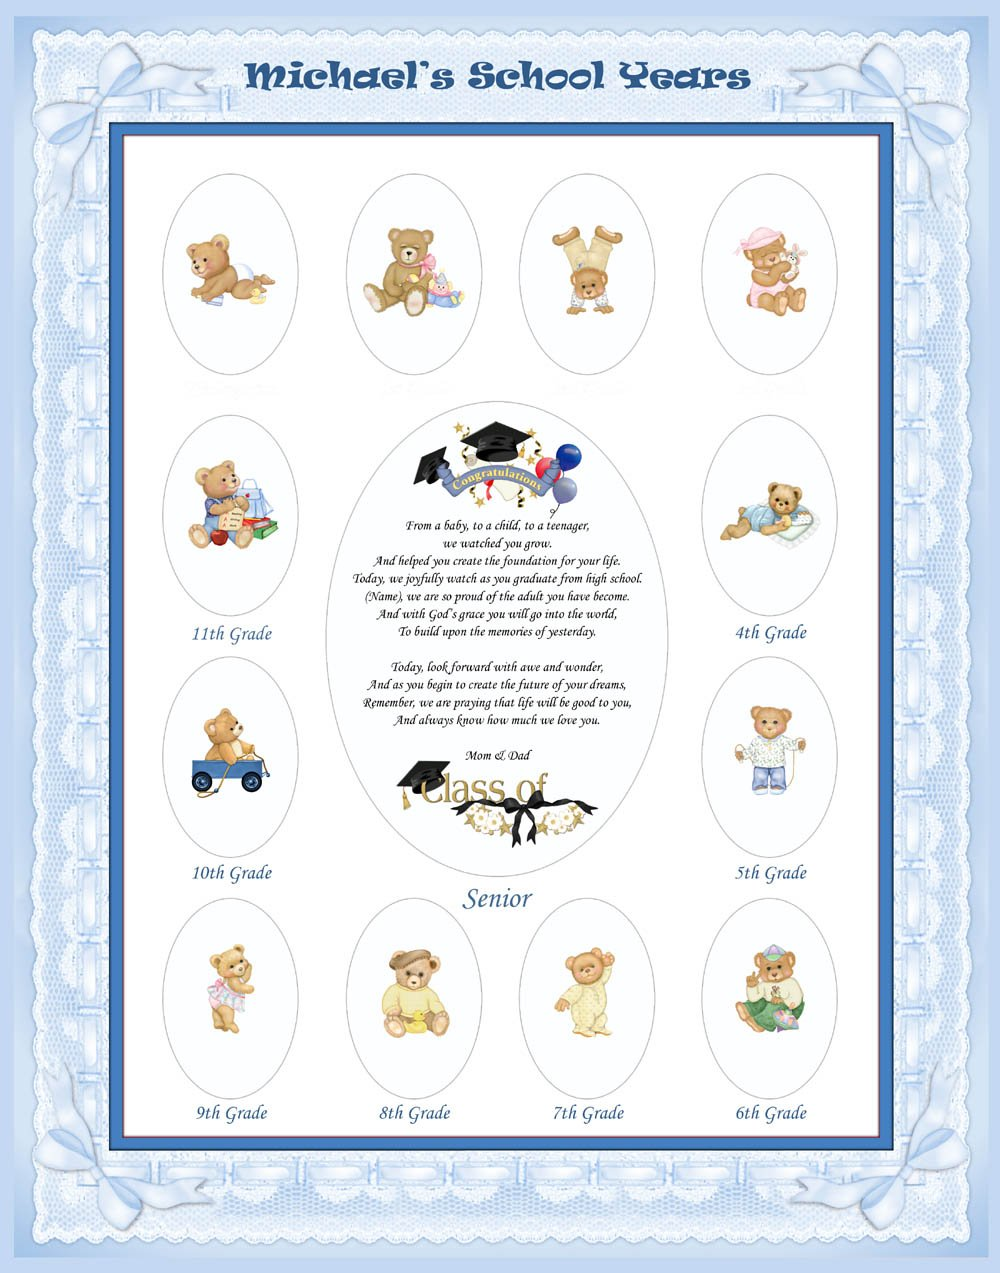 11 x 14 Blue Baby Boy Personalized Ribbon Border My School Years Days Photo Mat with Teddy Bear Illustration and Poem. Cute Baby Shower or Nursery Decor Gift